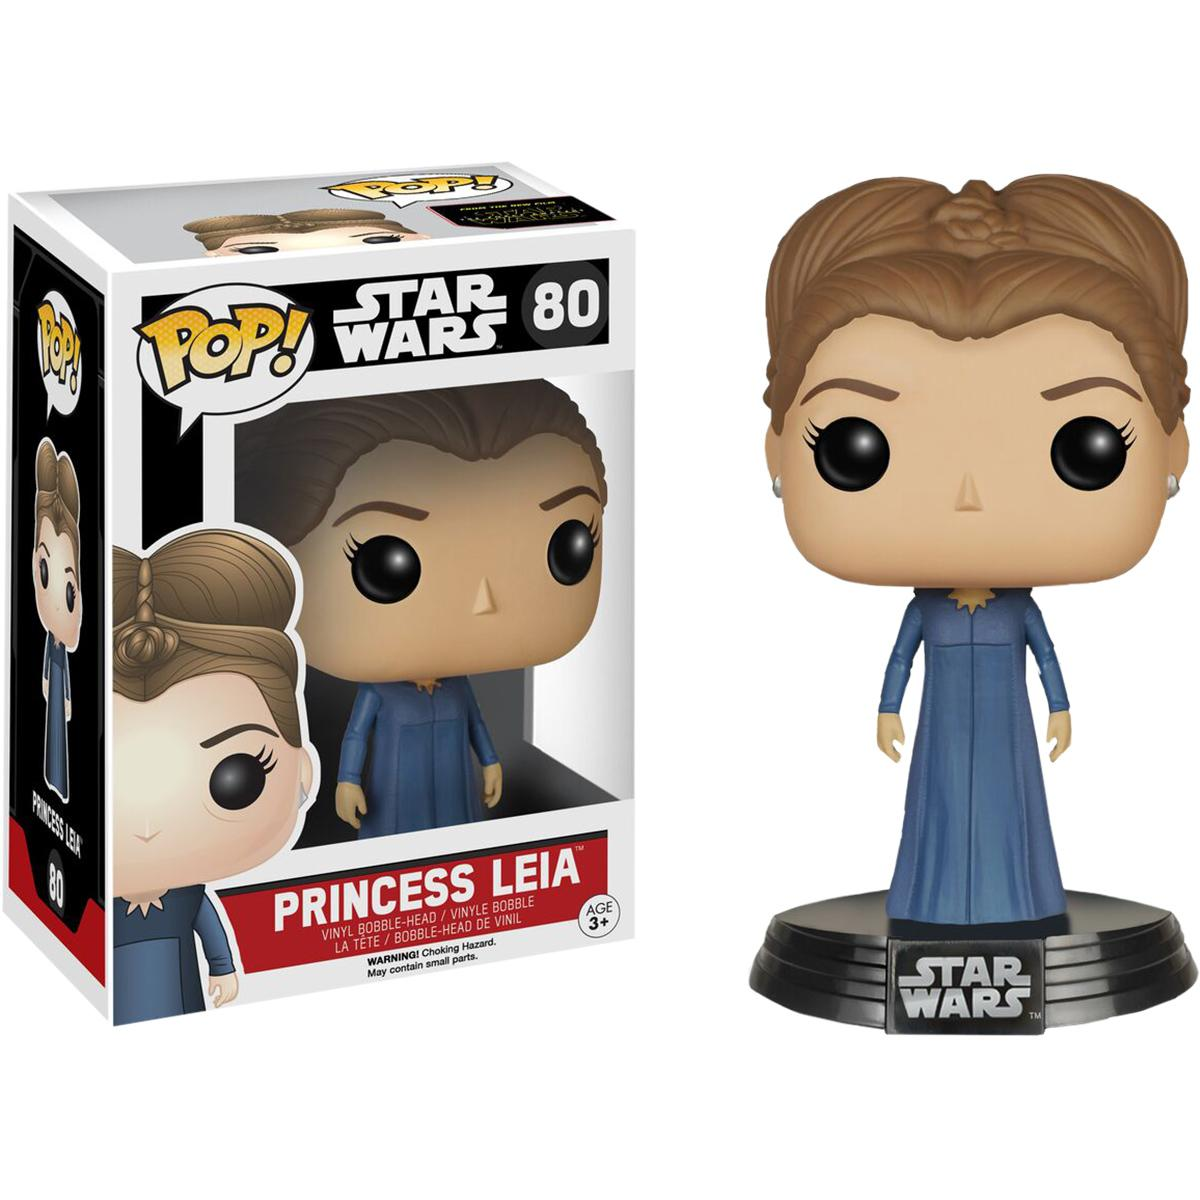 Pop Vinyl Star Wars Princess Leia Figure3